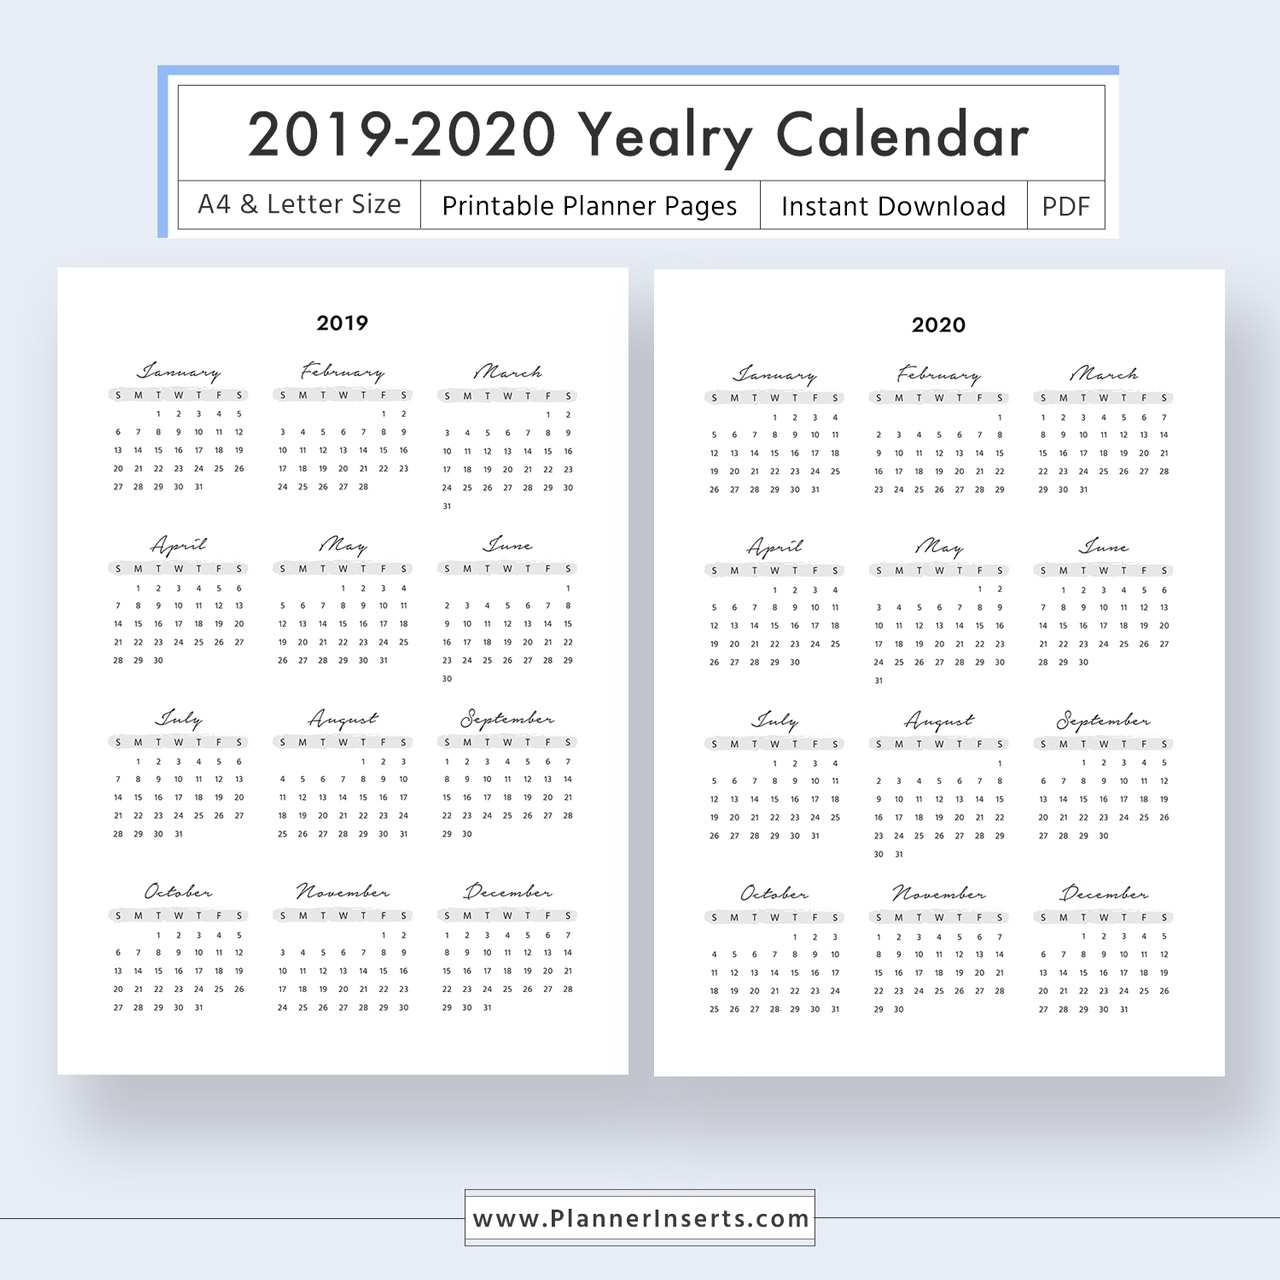 2019-2020 Yearly Calendar For Unlimited Instant Download - Digital  Printable Planner Inserts In .pdf Format - A4 & Letter Size -Year At A  Glance,